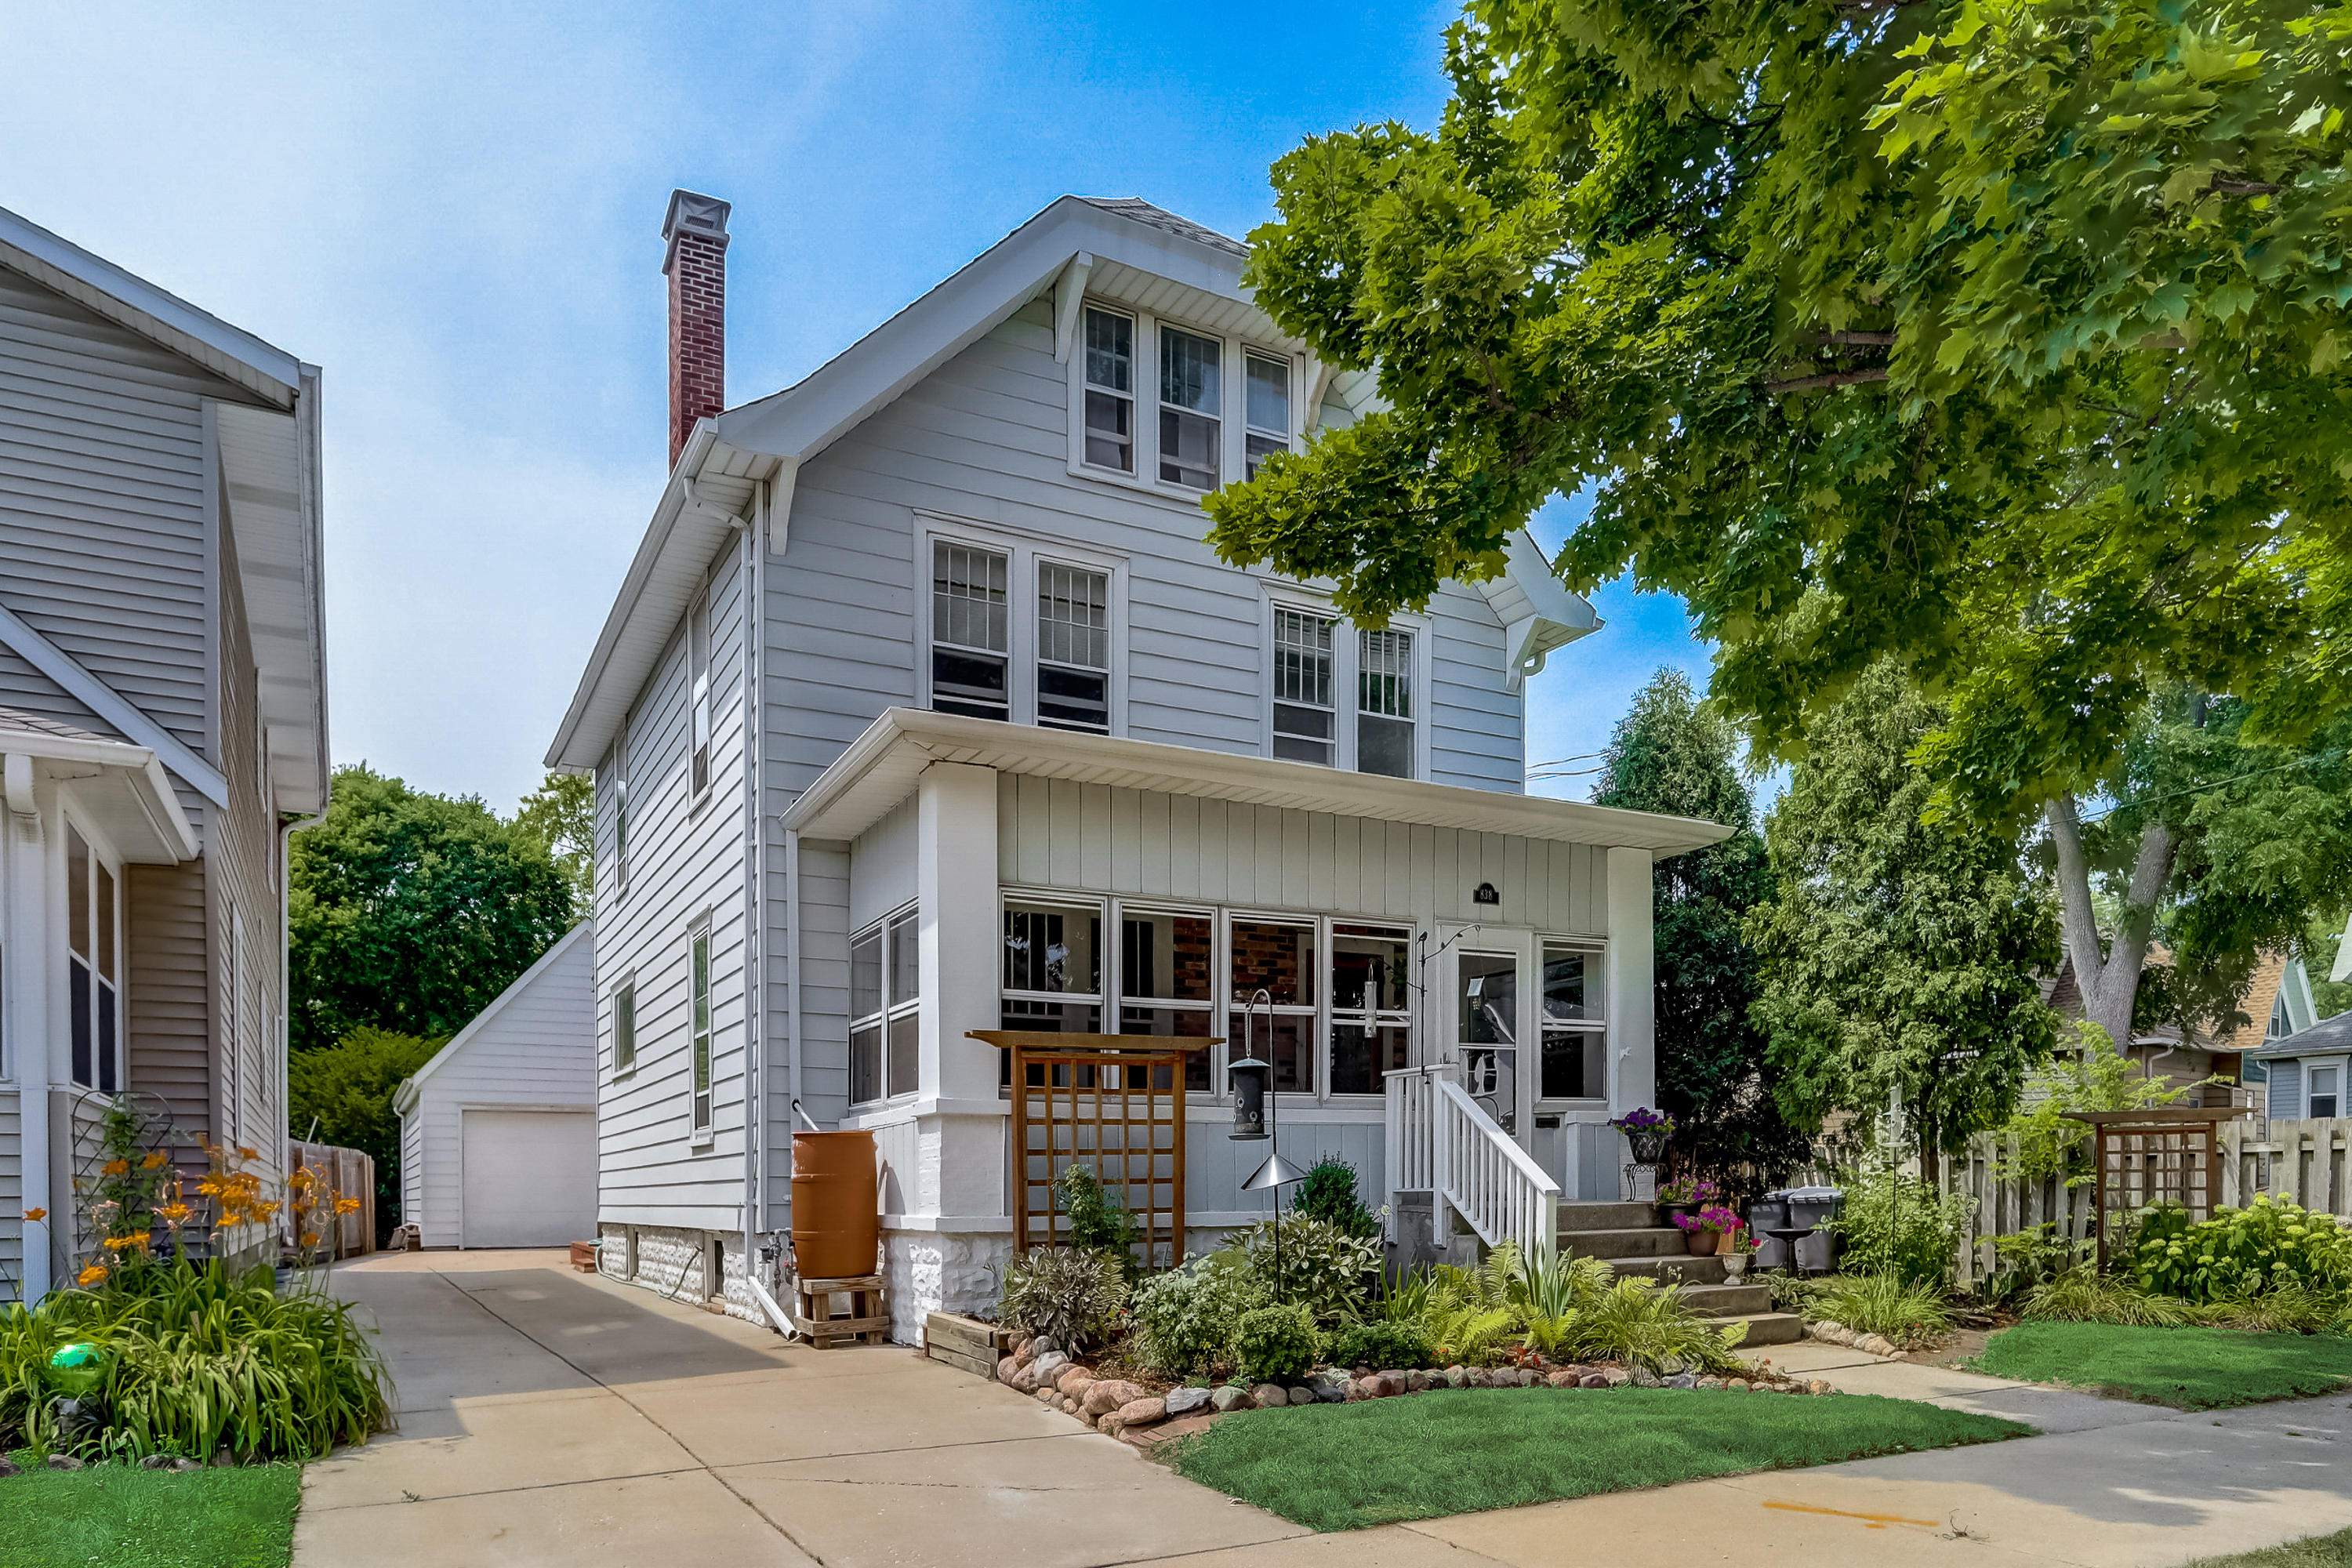 838 Oakland Ave, Waukesha, Wisconsin 53186, 3 Bedrooms Bedrooms, ,2 BathroomsBathrooms,Single-Family,For Sale,Oakland Ave,1755083